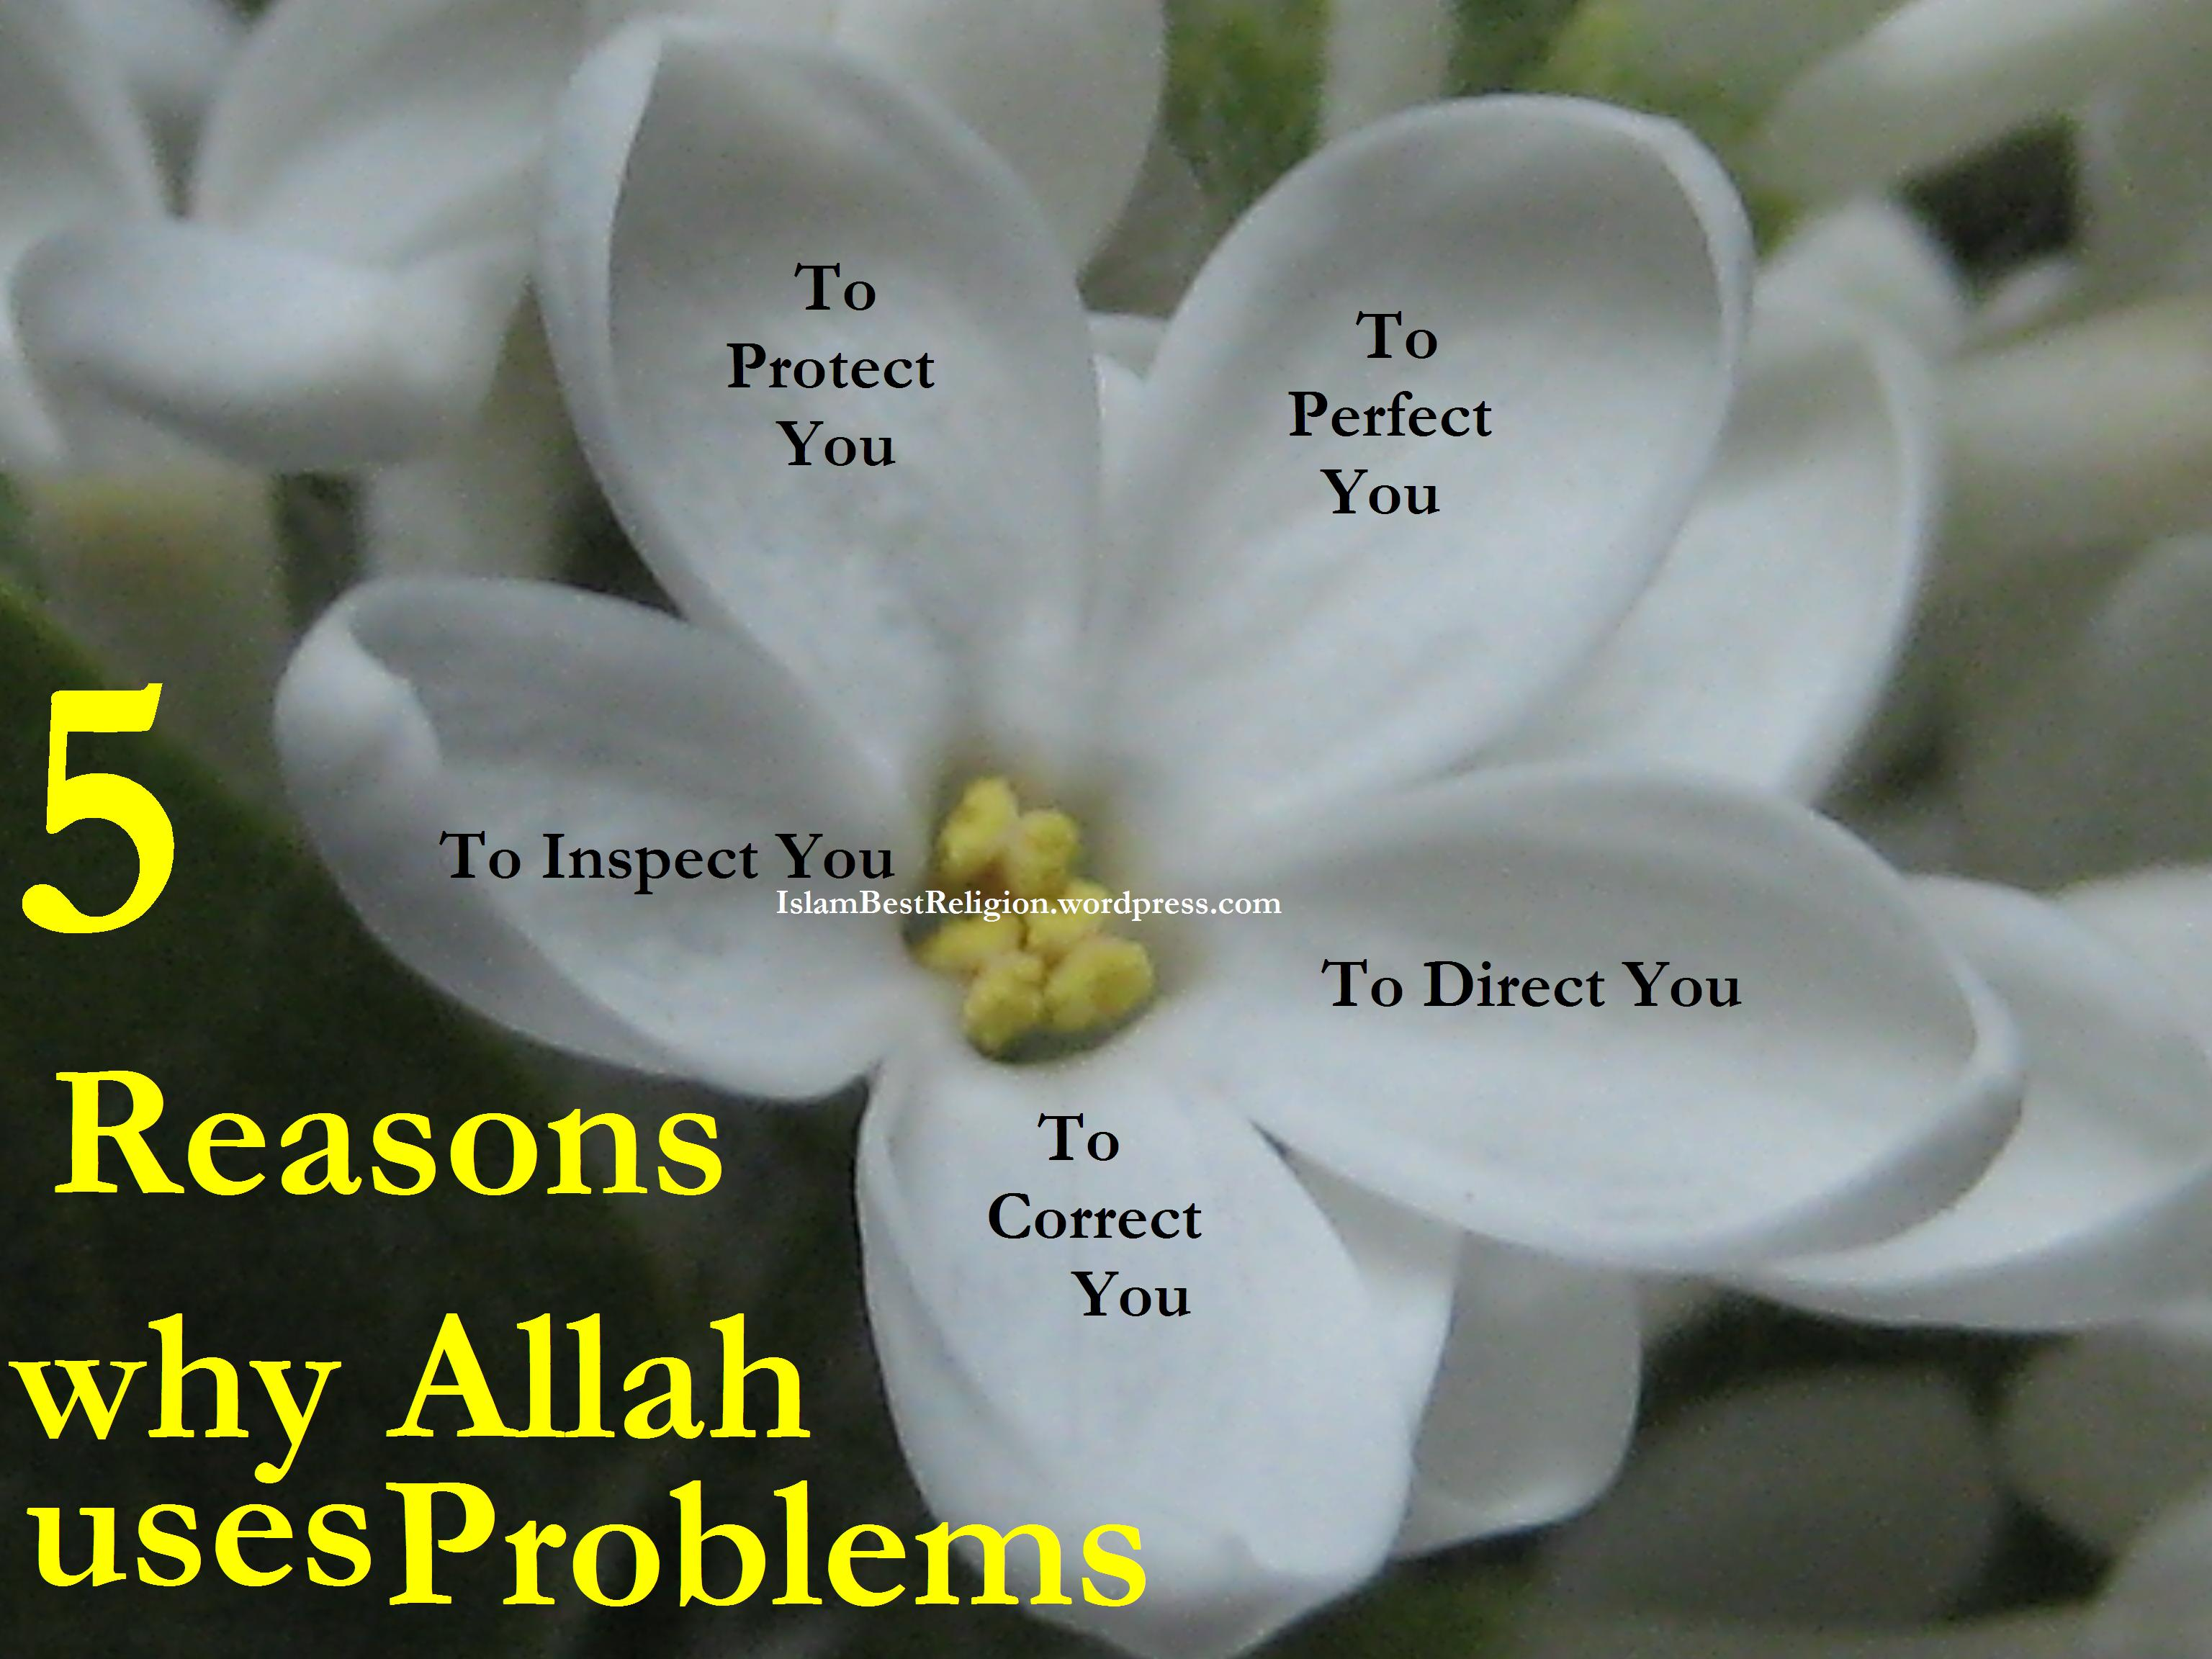 Problems are blessings too